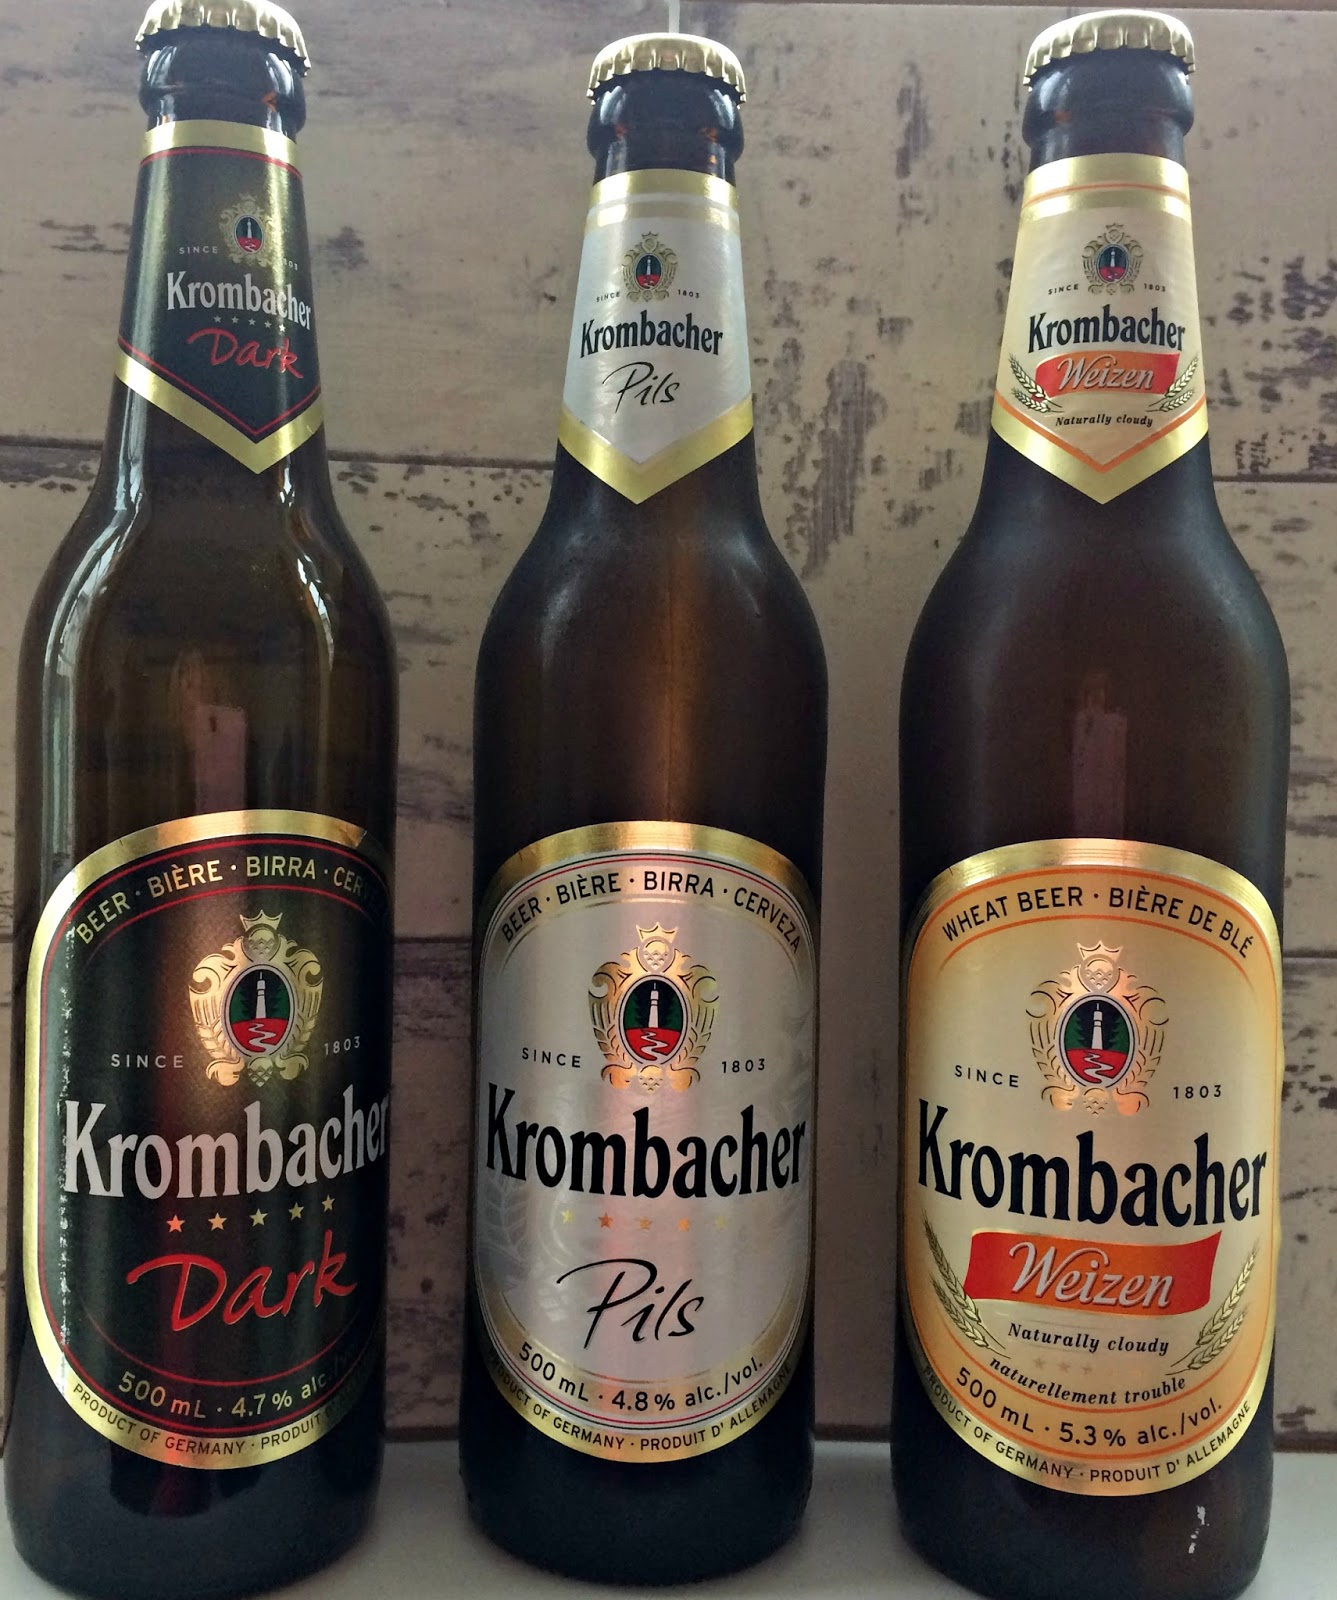 Selection of Krombacher beers